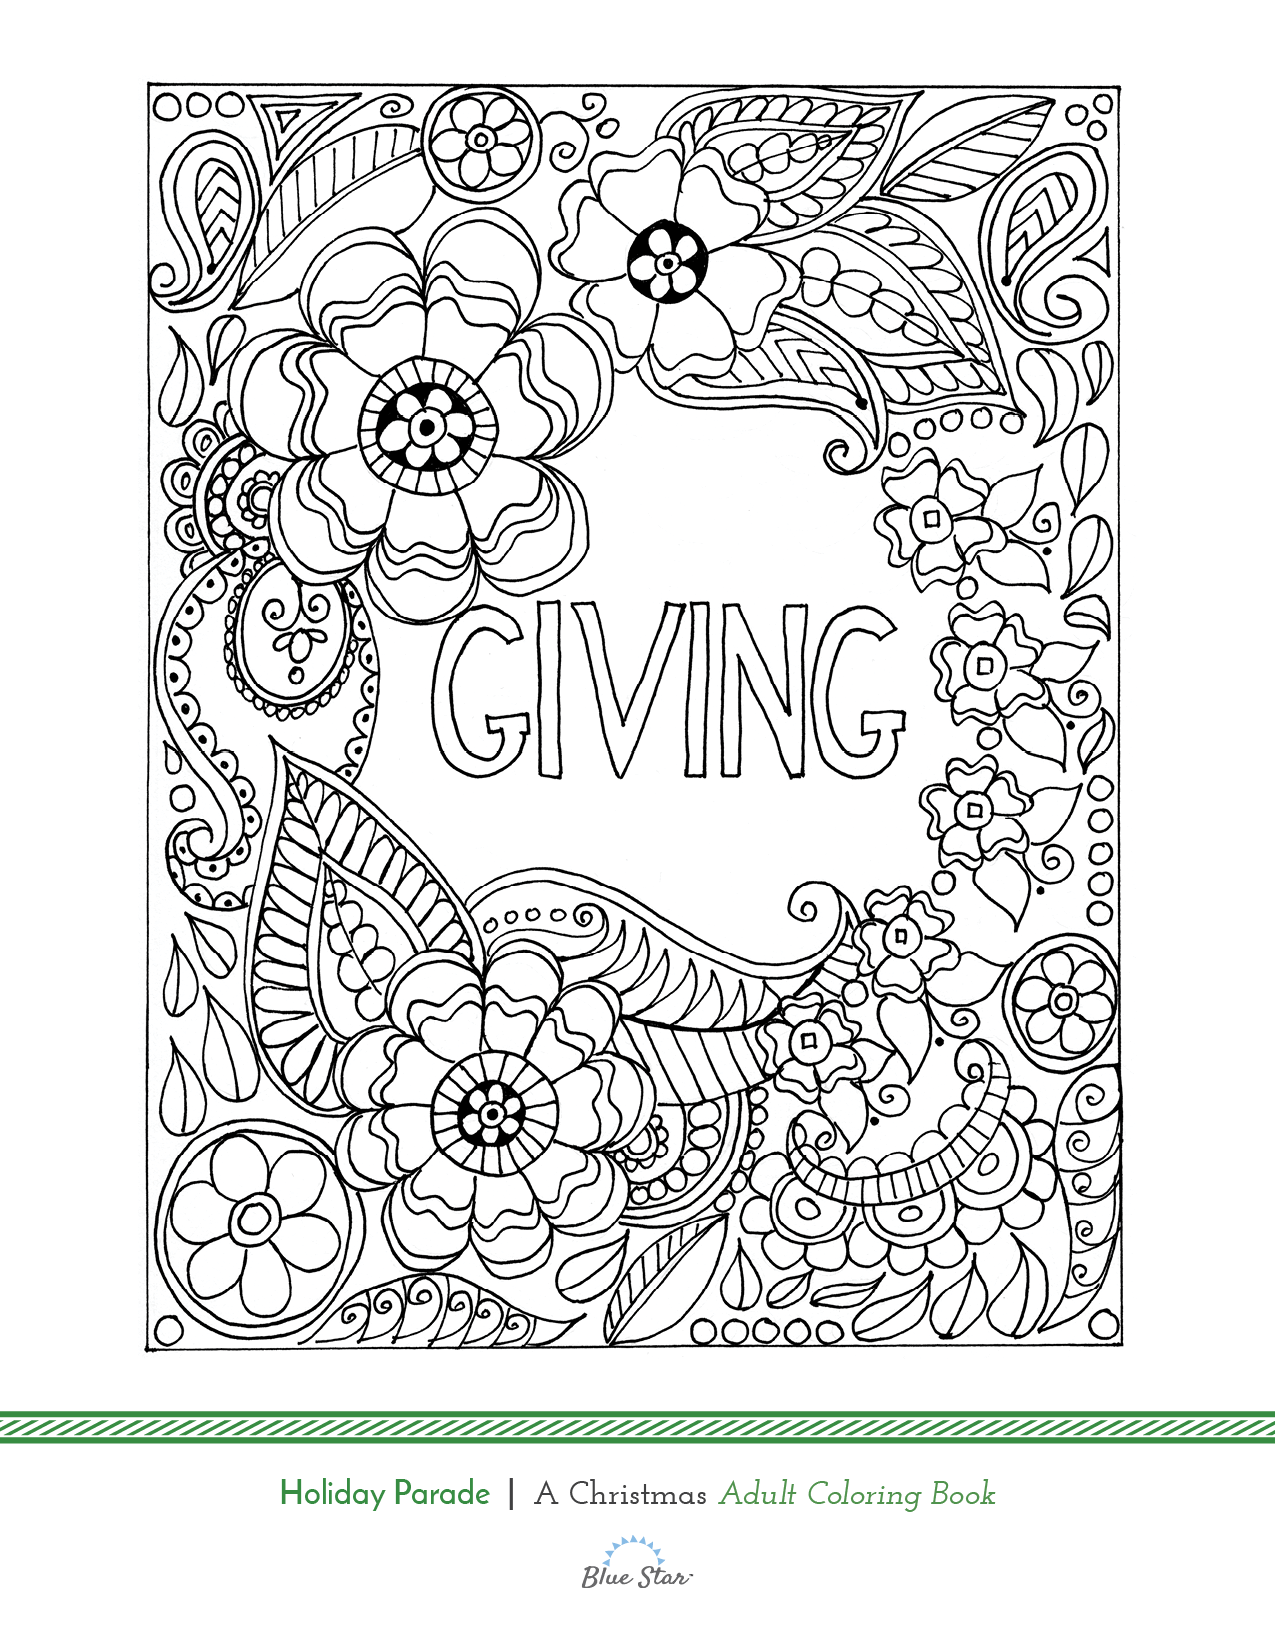 Parade coloring pages to print for adults - Another Free Adult Coloring Book Page From Our New Release Coming This Week Holiday Parade